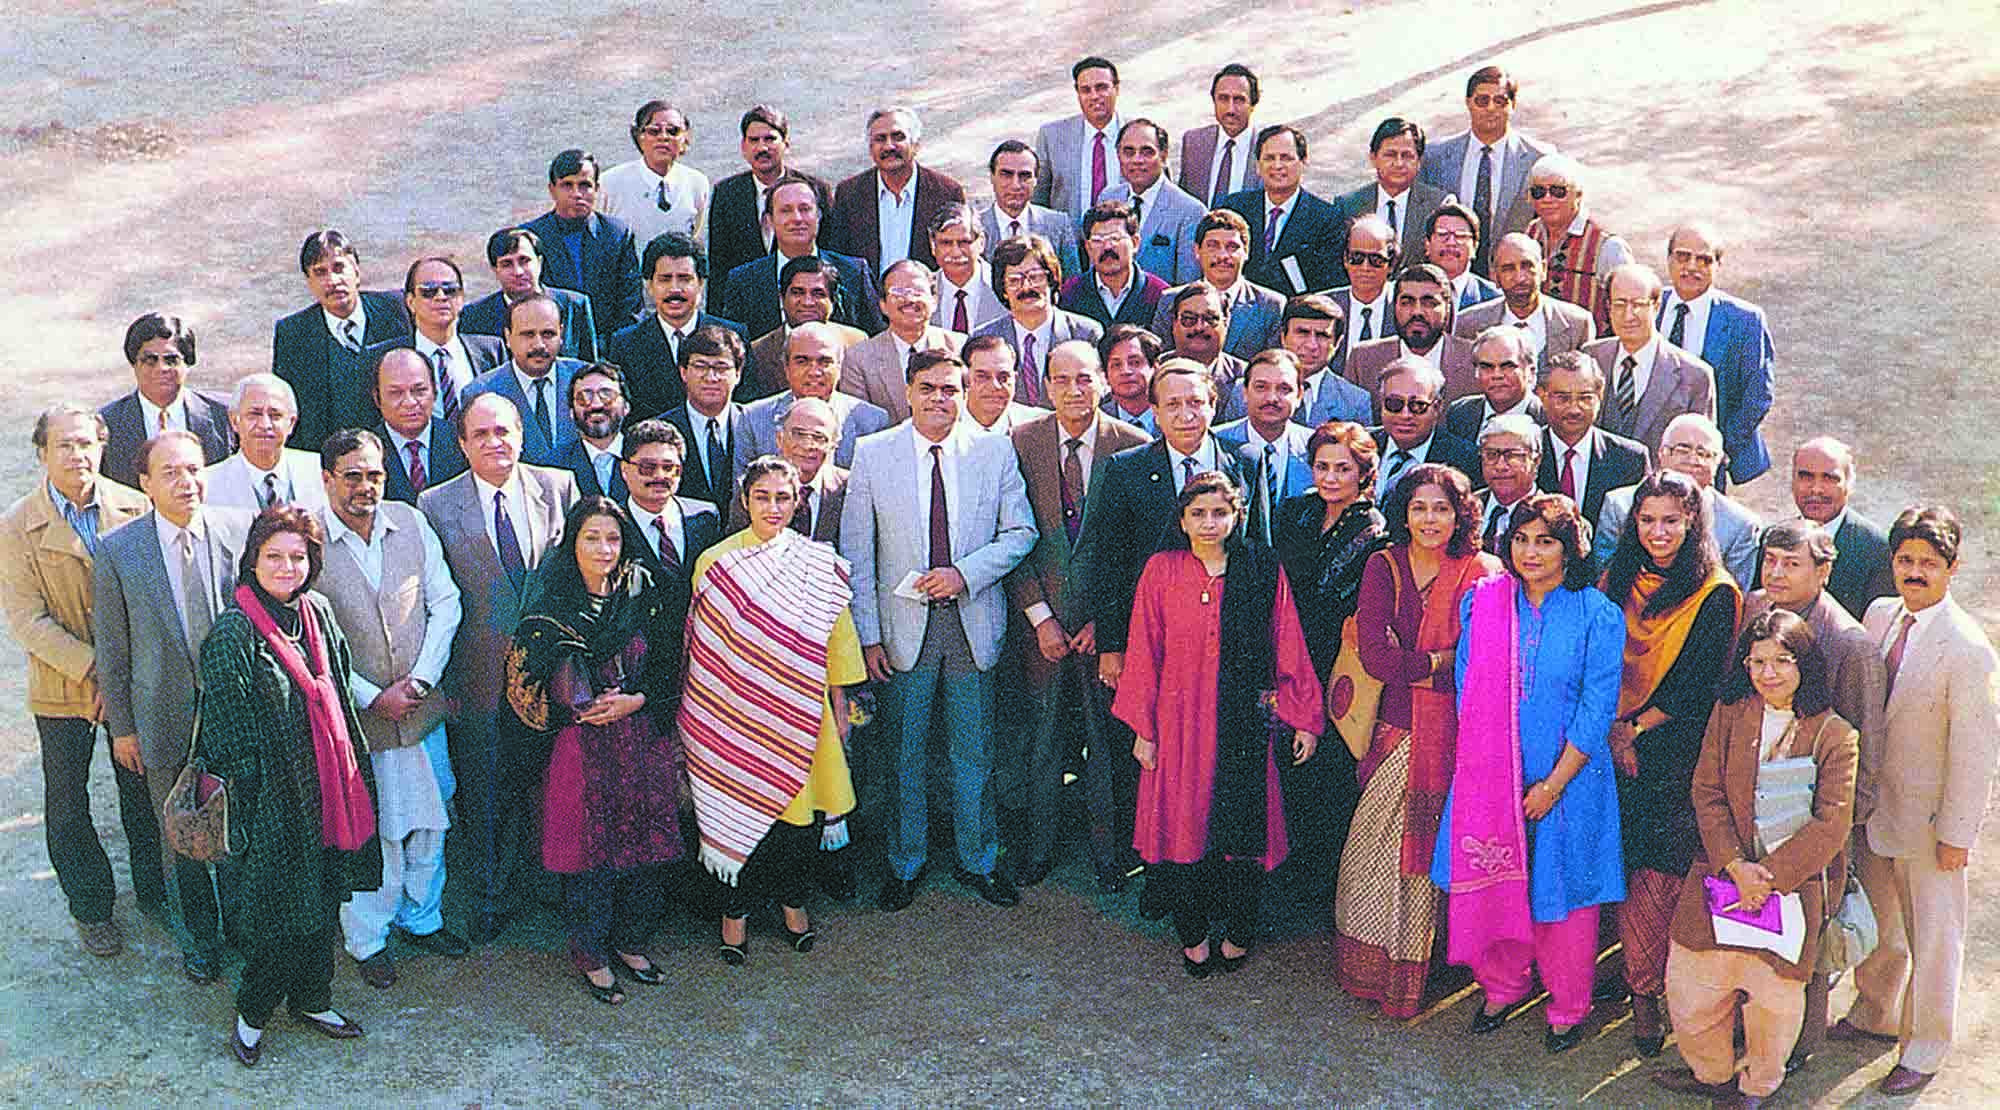 The Organising Committee of AdAsia 89 Pakistan. The 16th Asian Advertising Congress was organised in Lahore after Pakistan made a successful bid in Seoul in 1984 and won over Australia to host the event. Come 1989 and Pakistan played host to one of the most memorable AdAsias, despite the lack of conference and entertainment facilities. (photo: The Congress Handbook, AdAsia 89, and S.M. Shahid)